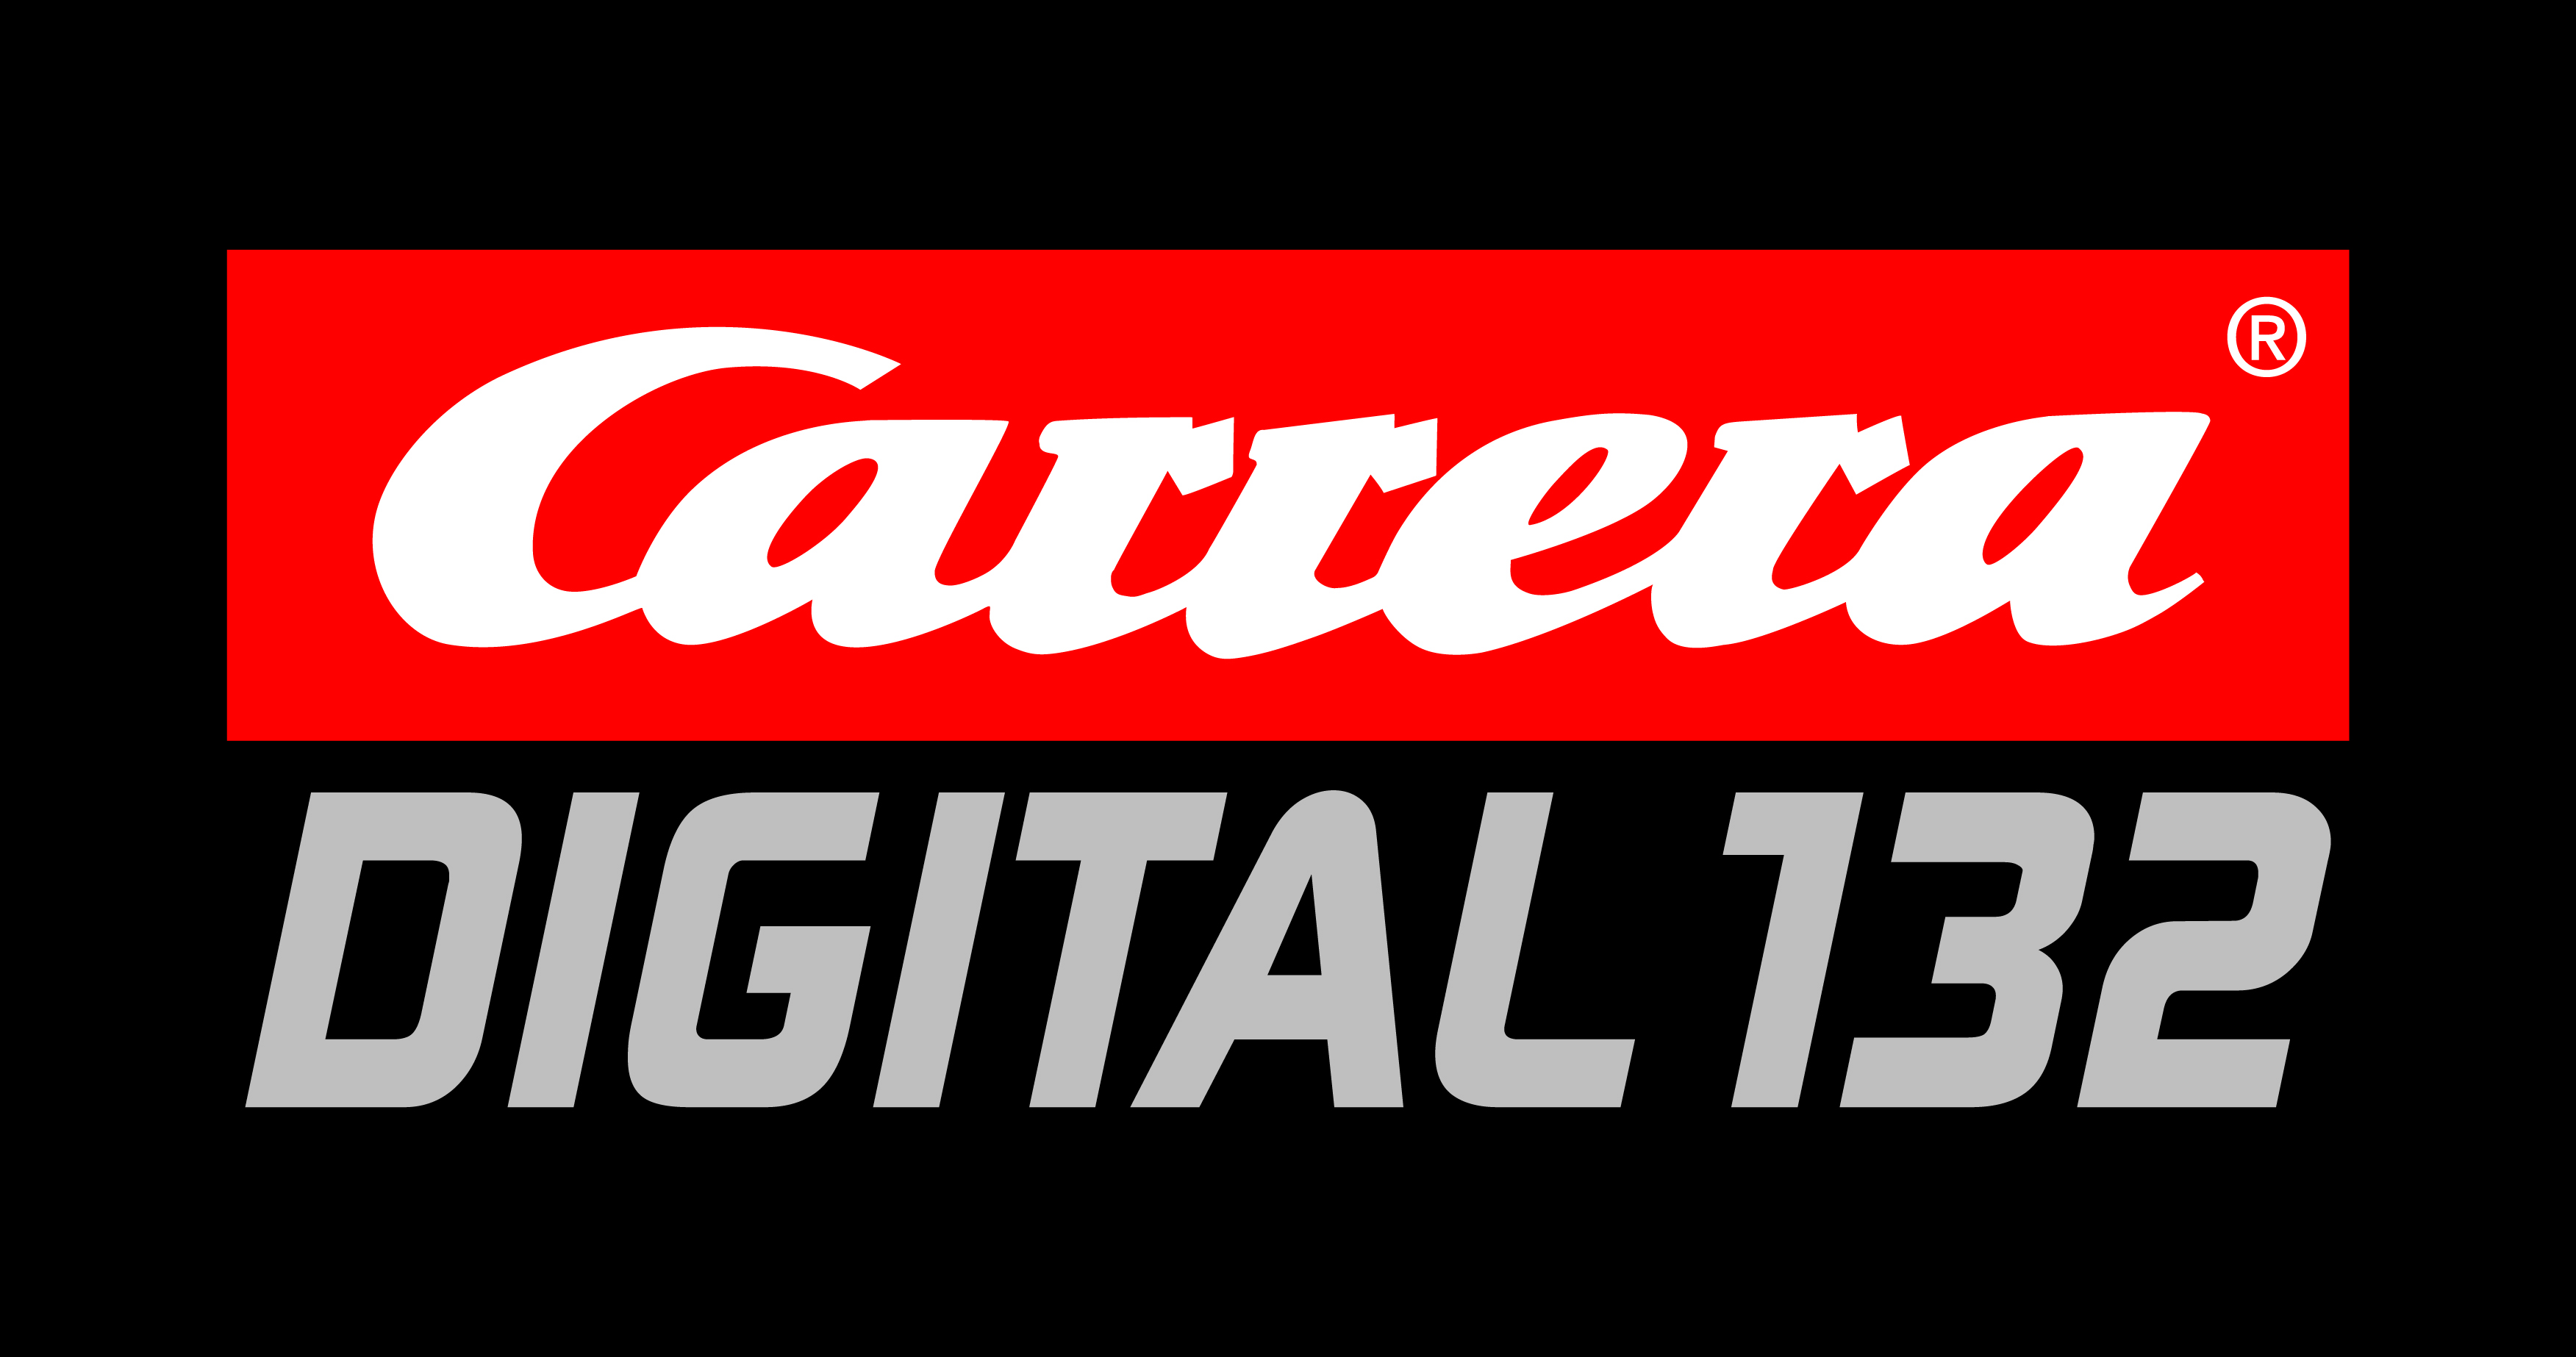 CARRERA DIGITAL 132